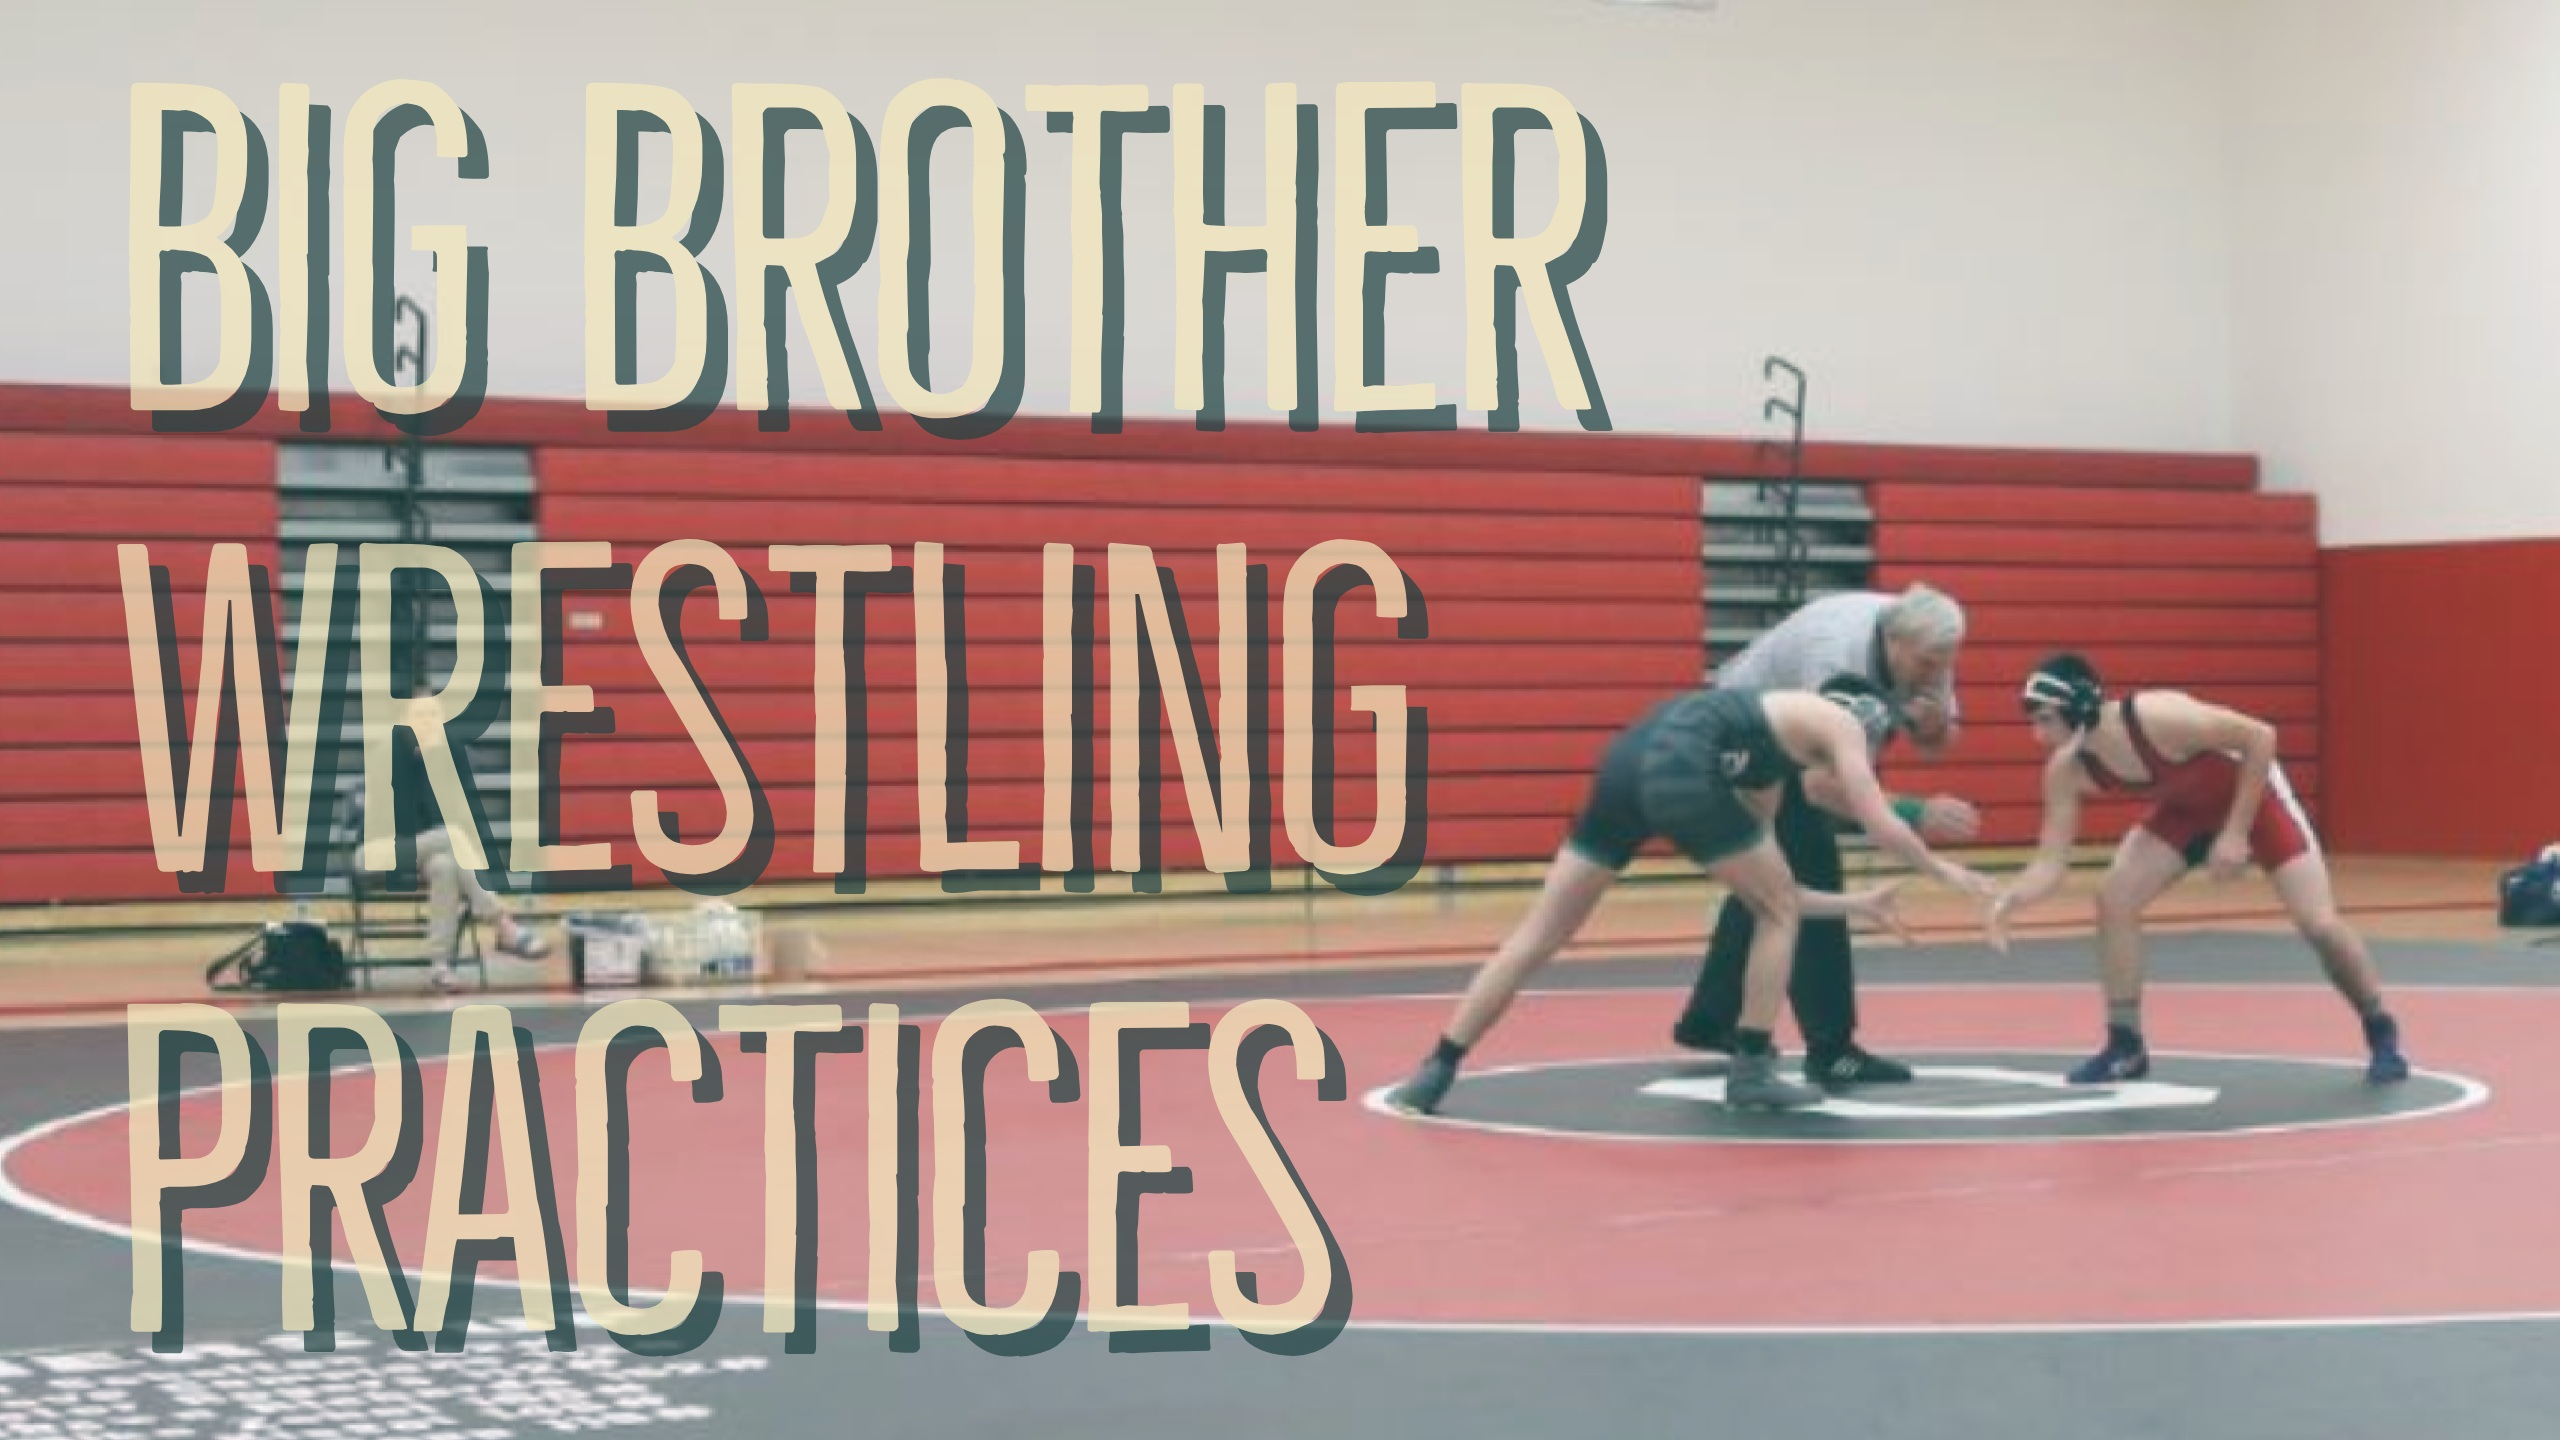 Big Brother Wrestling Practices